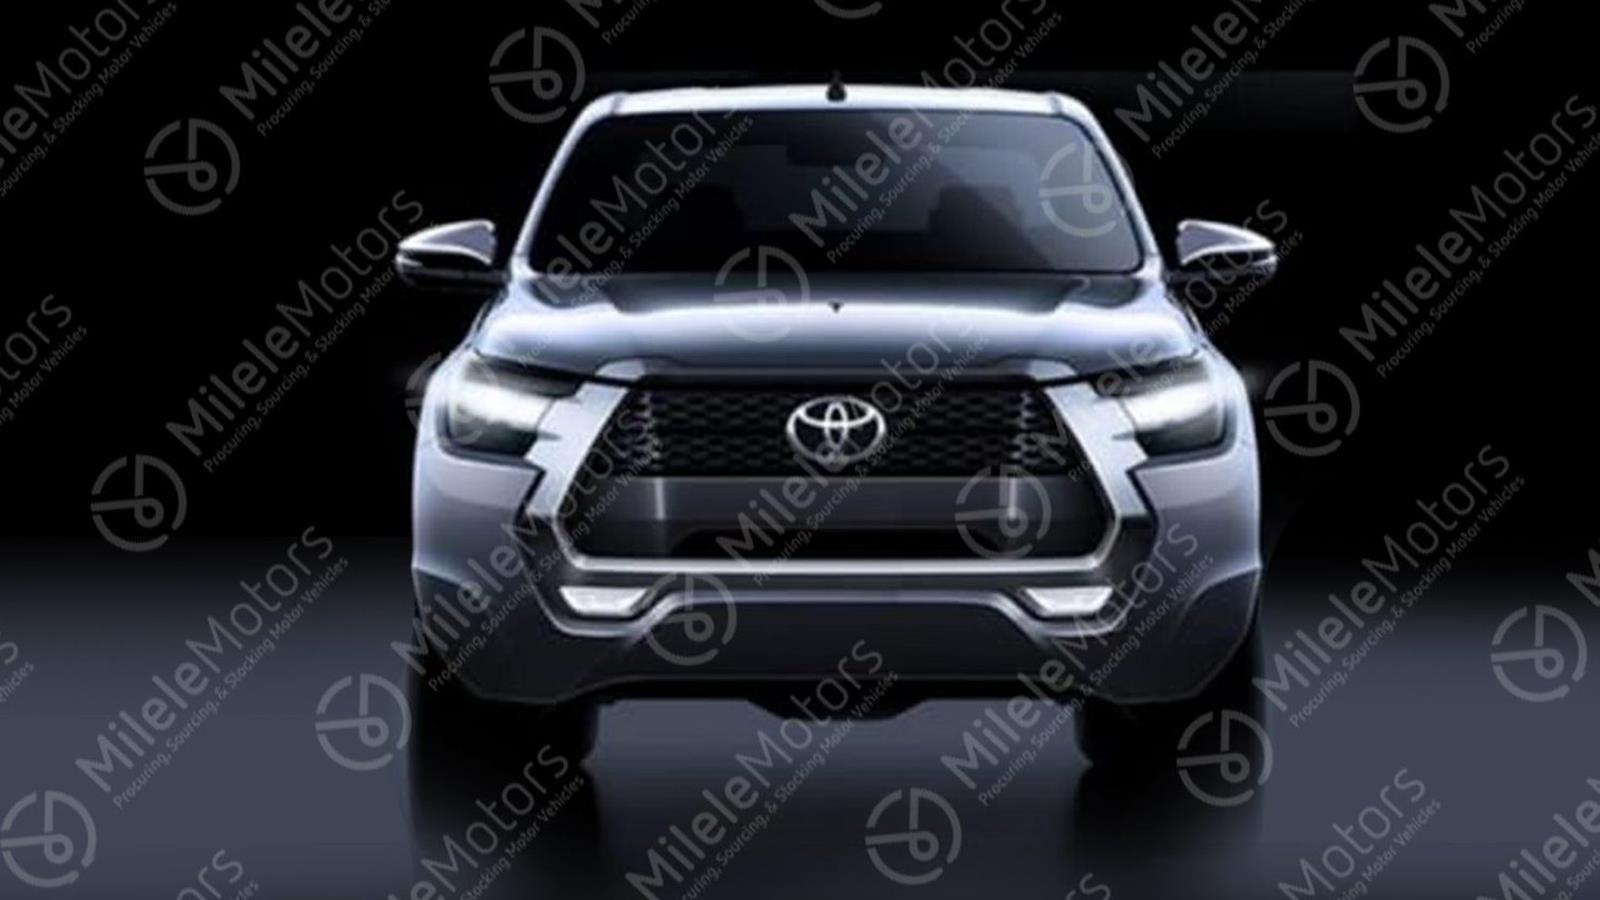 The 2021 Toyota Hilux has a more aggressive front end